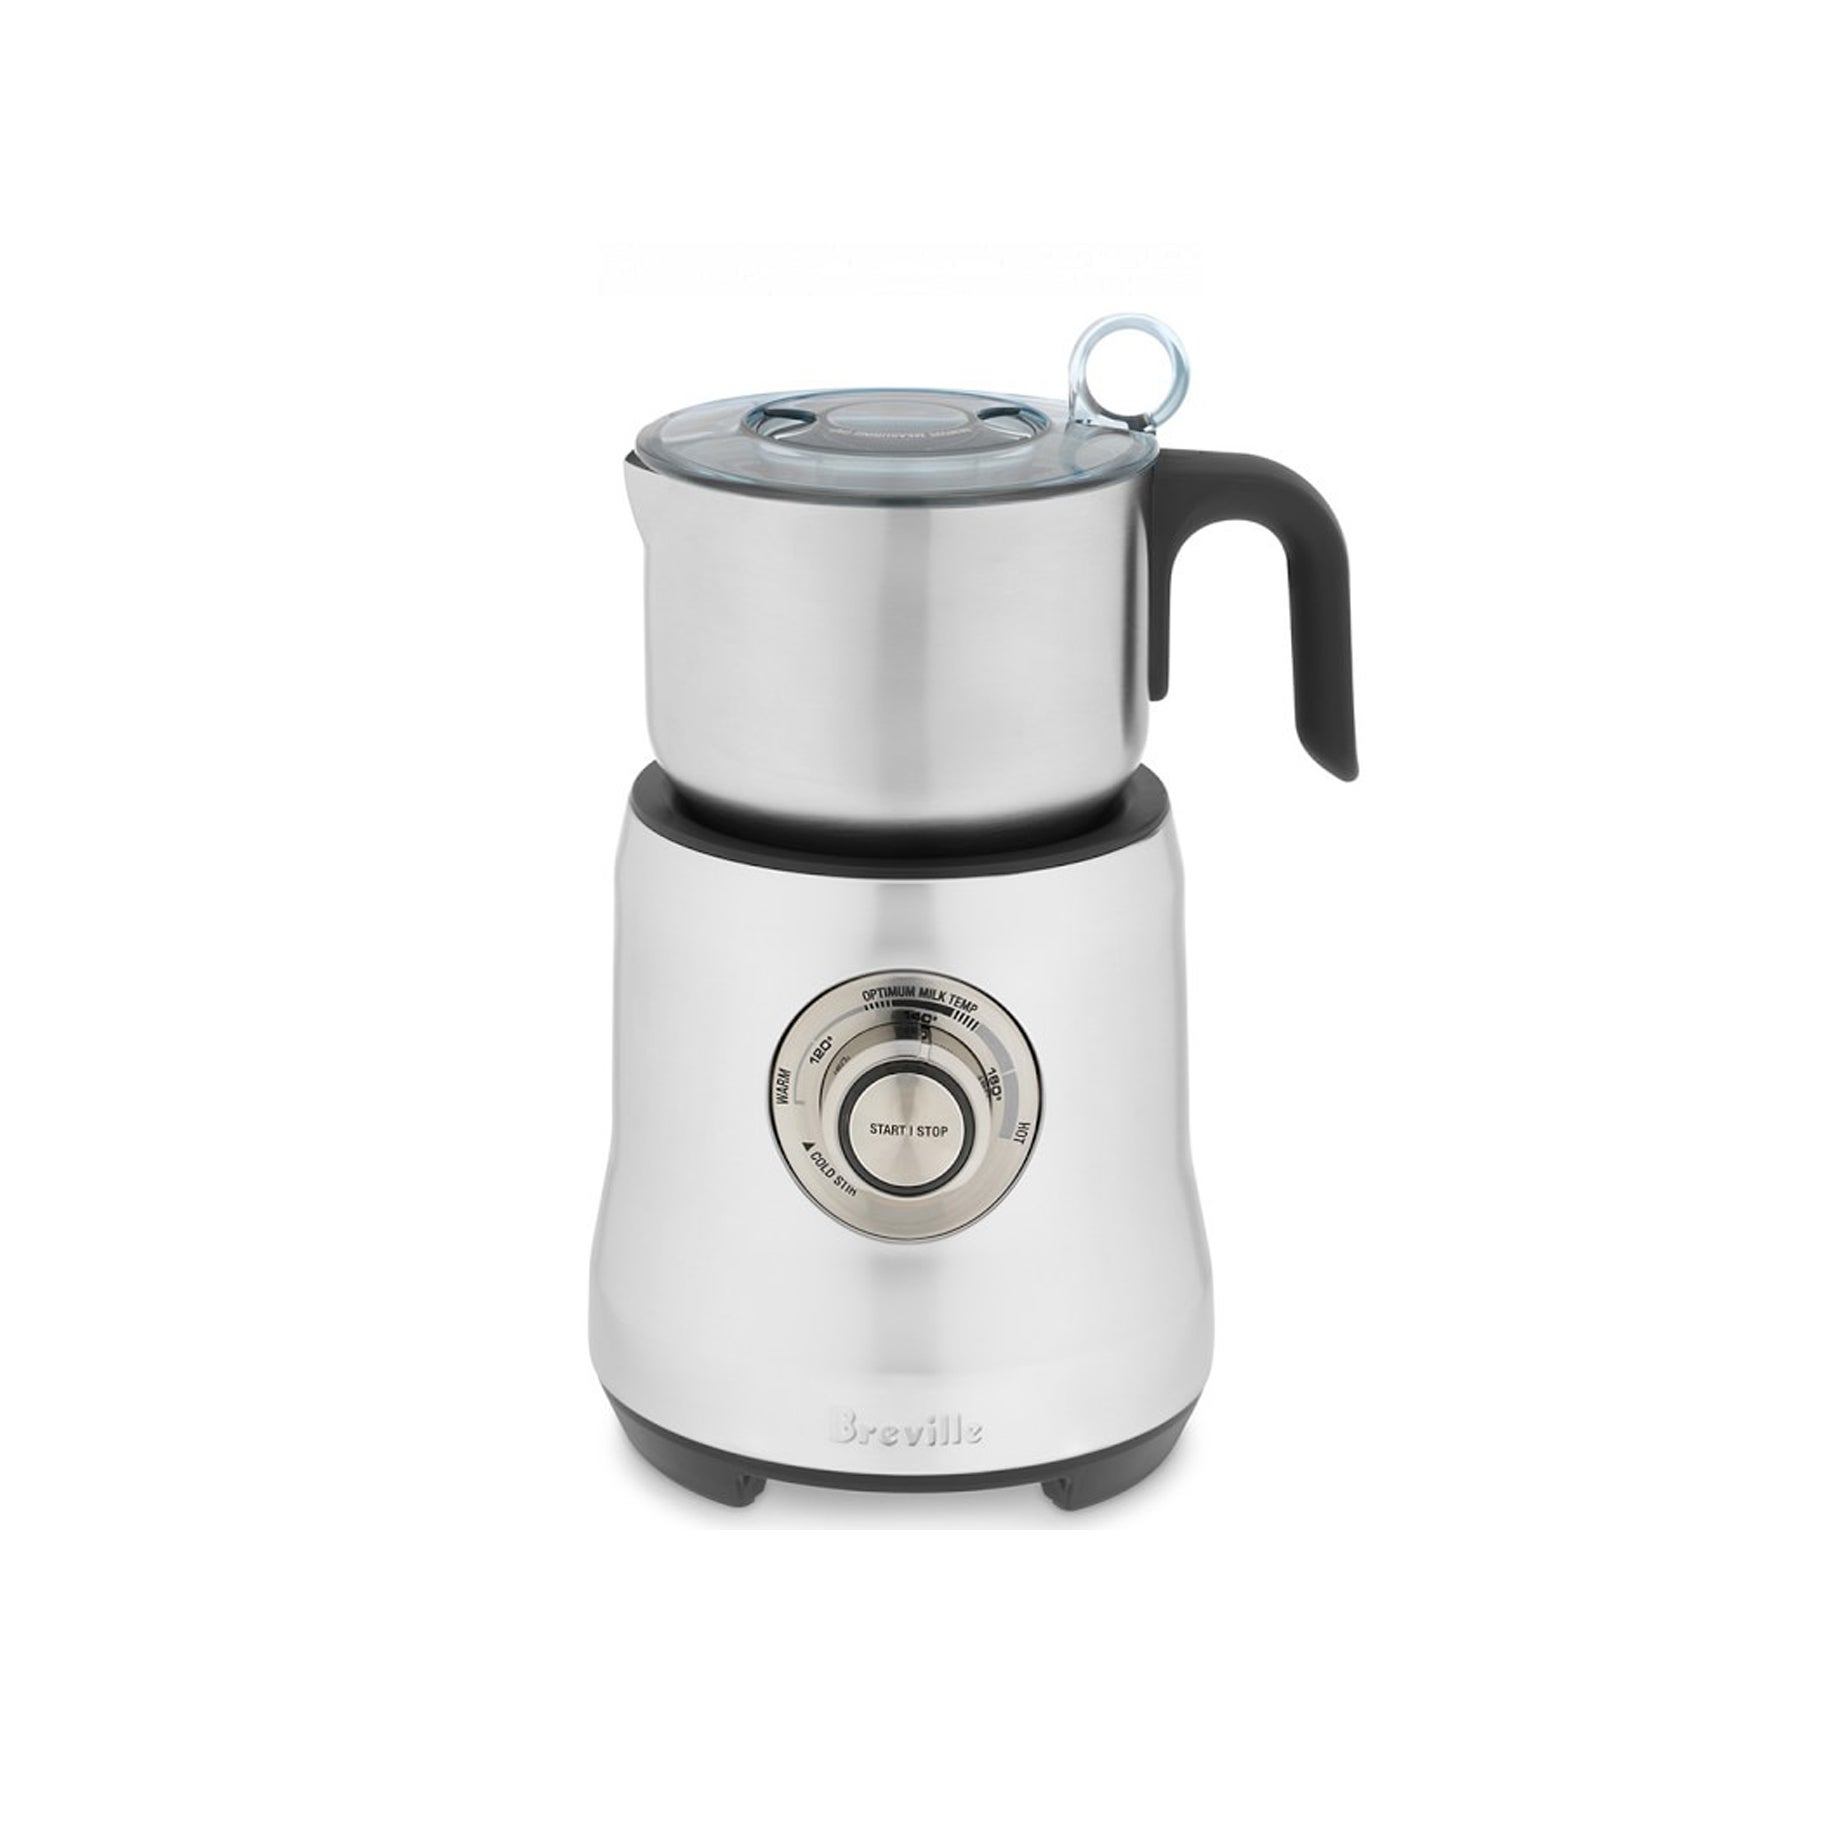 The Best Milk Frother Option: Breville The Milk Cafe Electric Frother